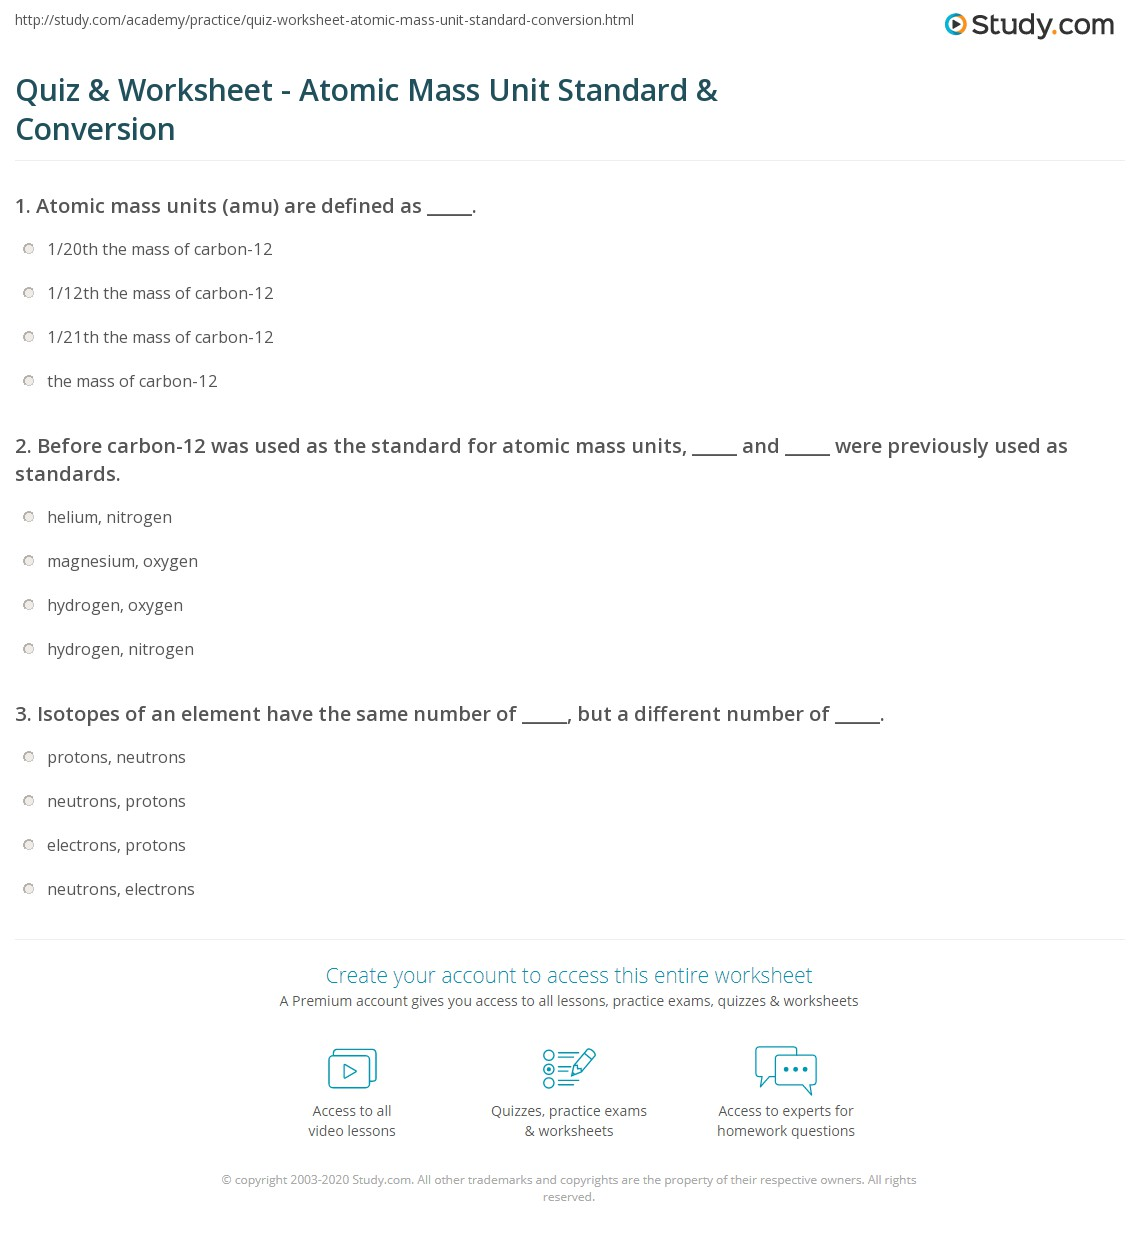 Worksheets Atomic Mass Worksheet quiz worksheet atomic mass unit standard conversion study com print amu definition worksheet